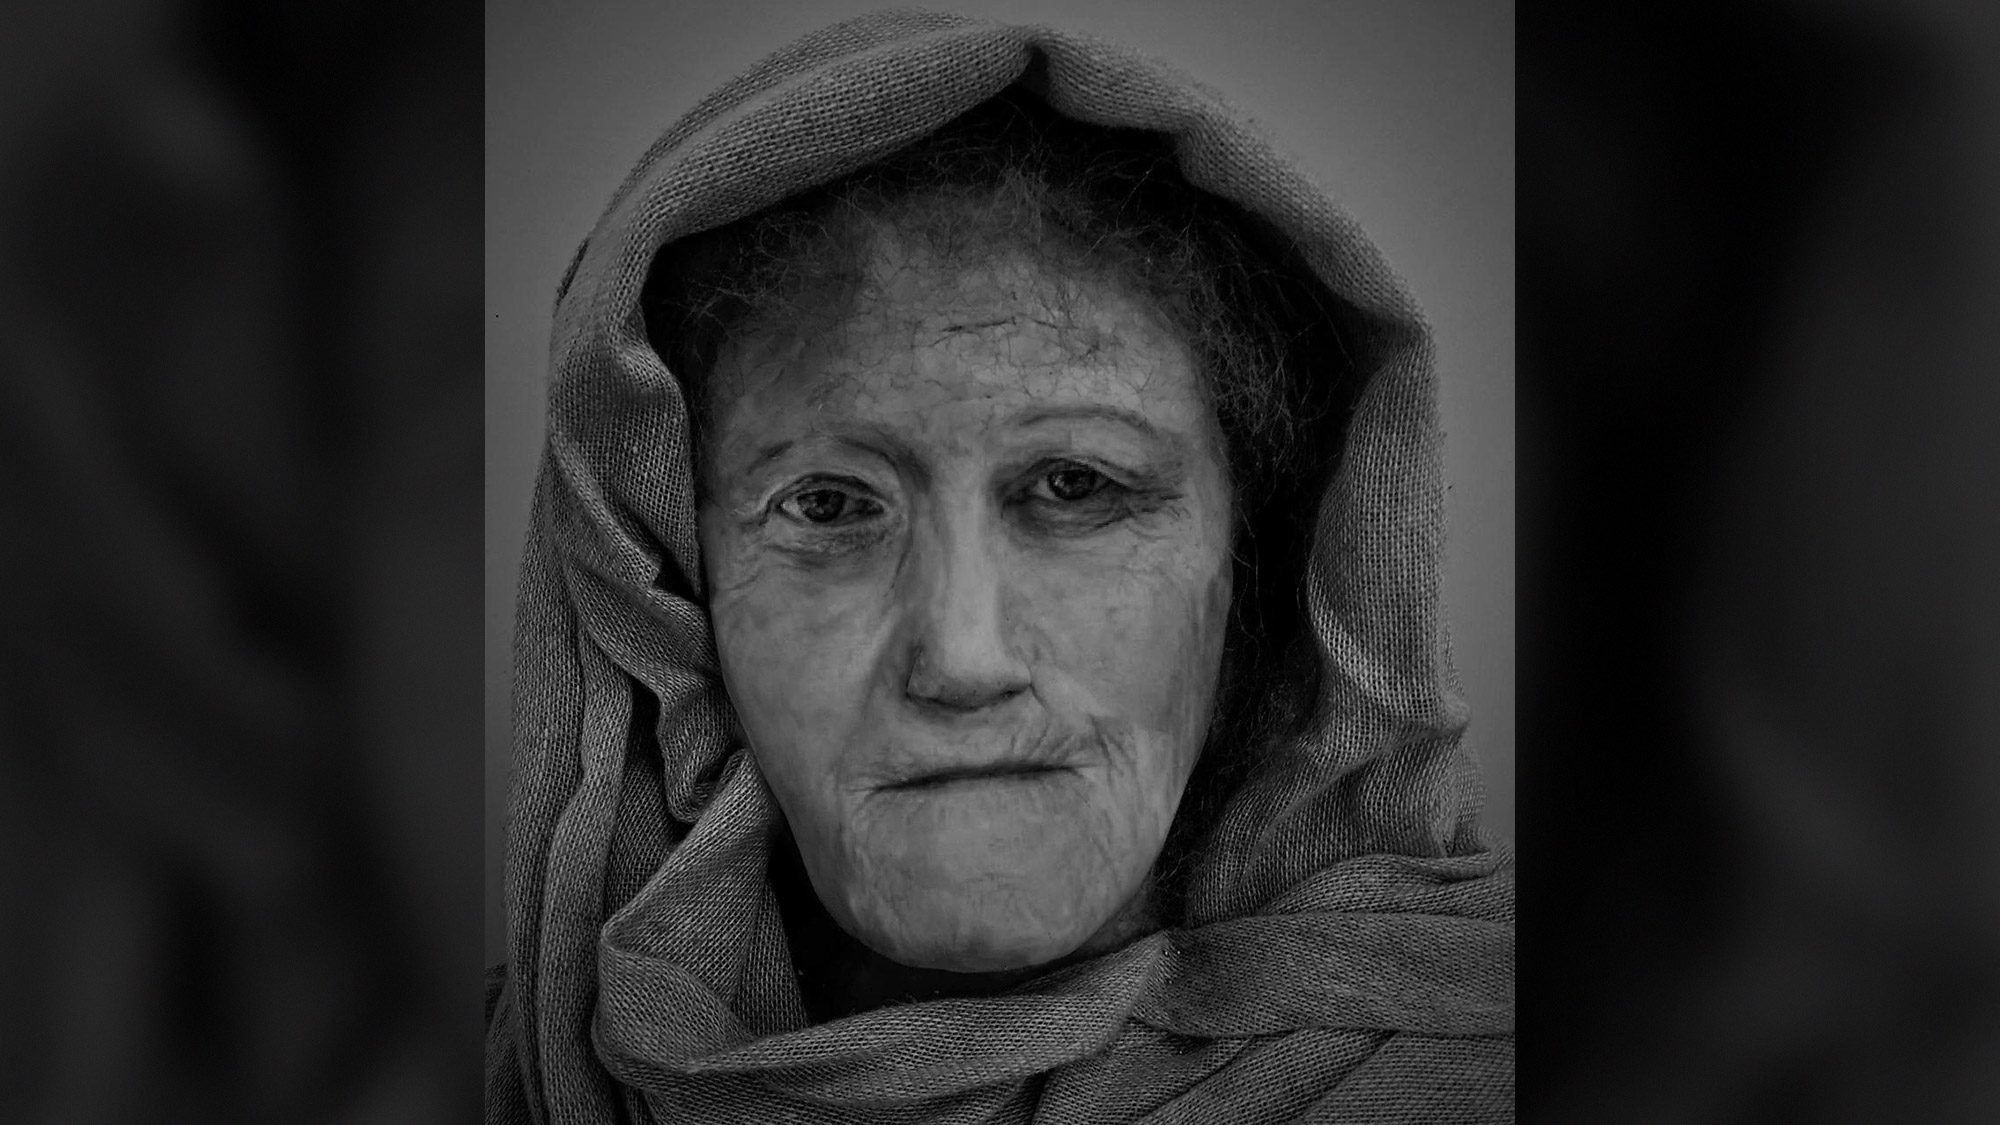 Toothless Druid Woman s Face Comes Alive in Wax Wrinkles and All